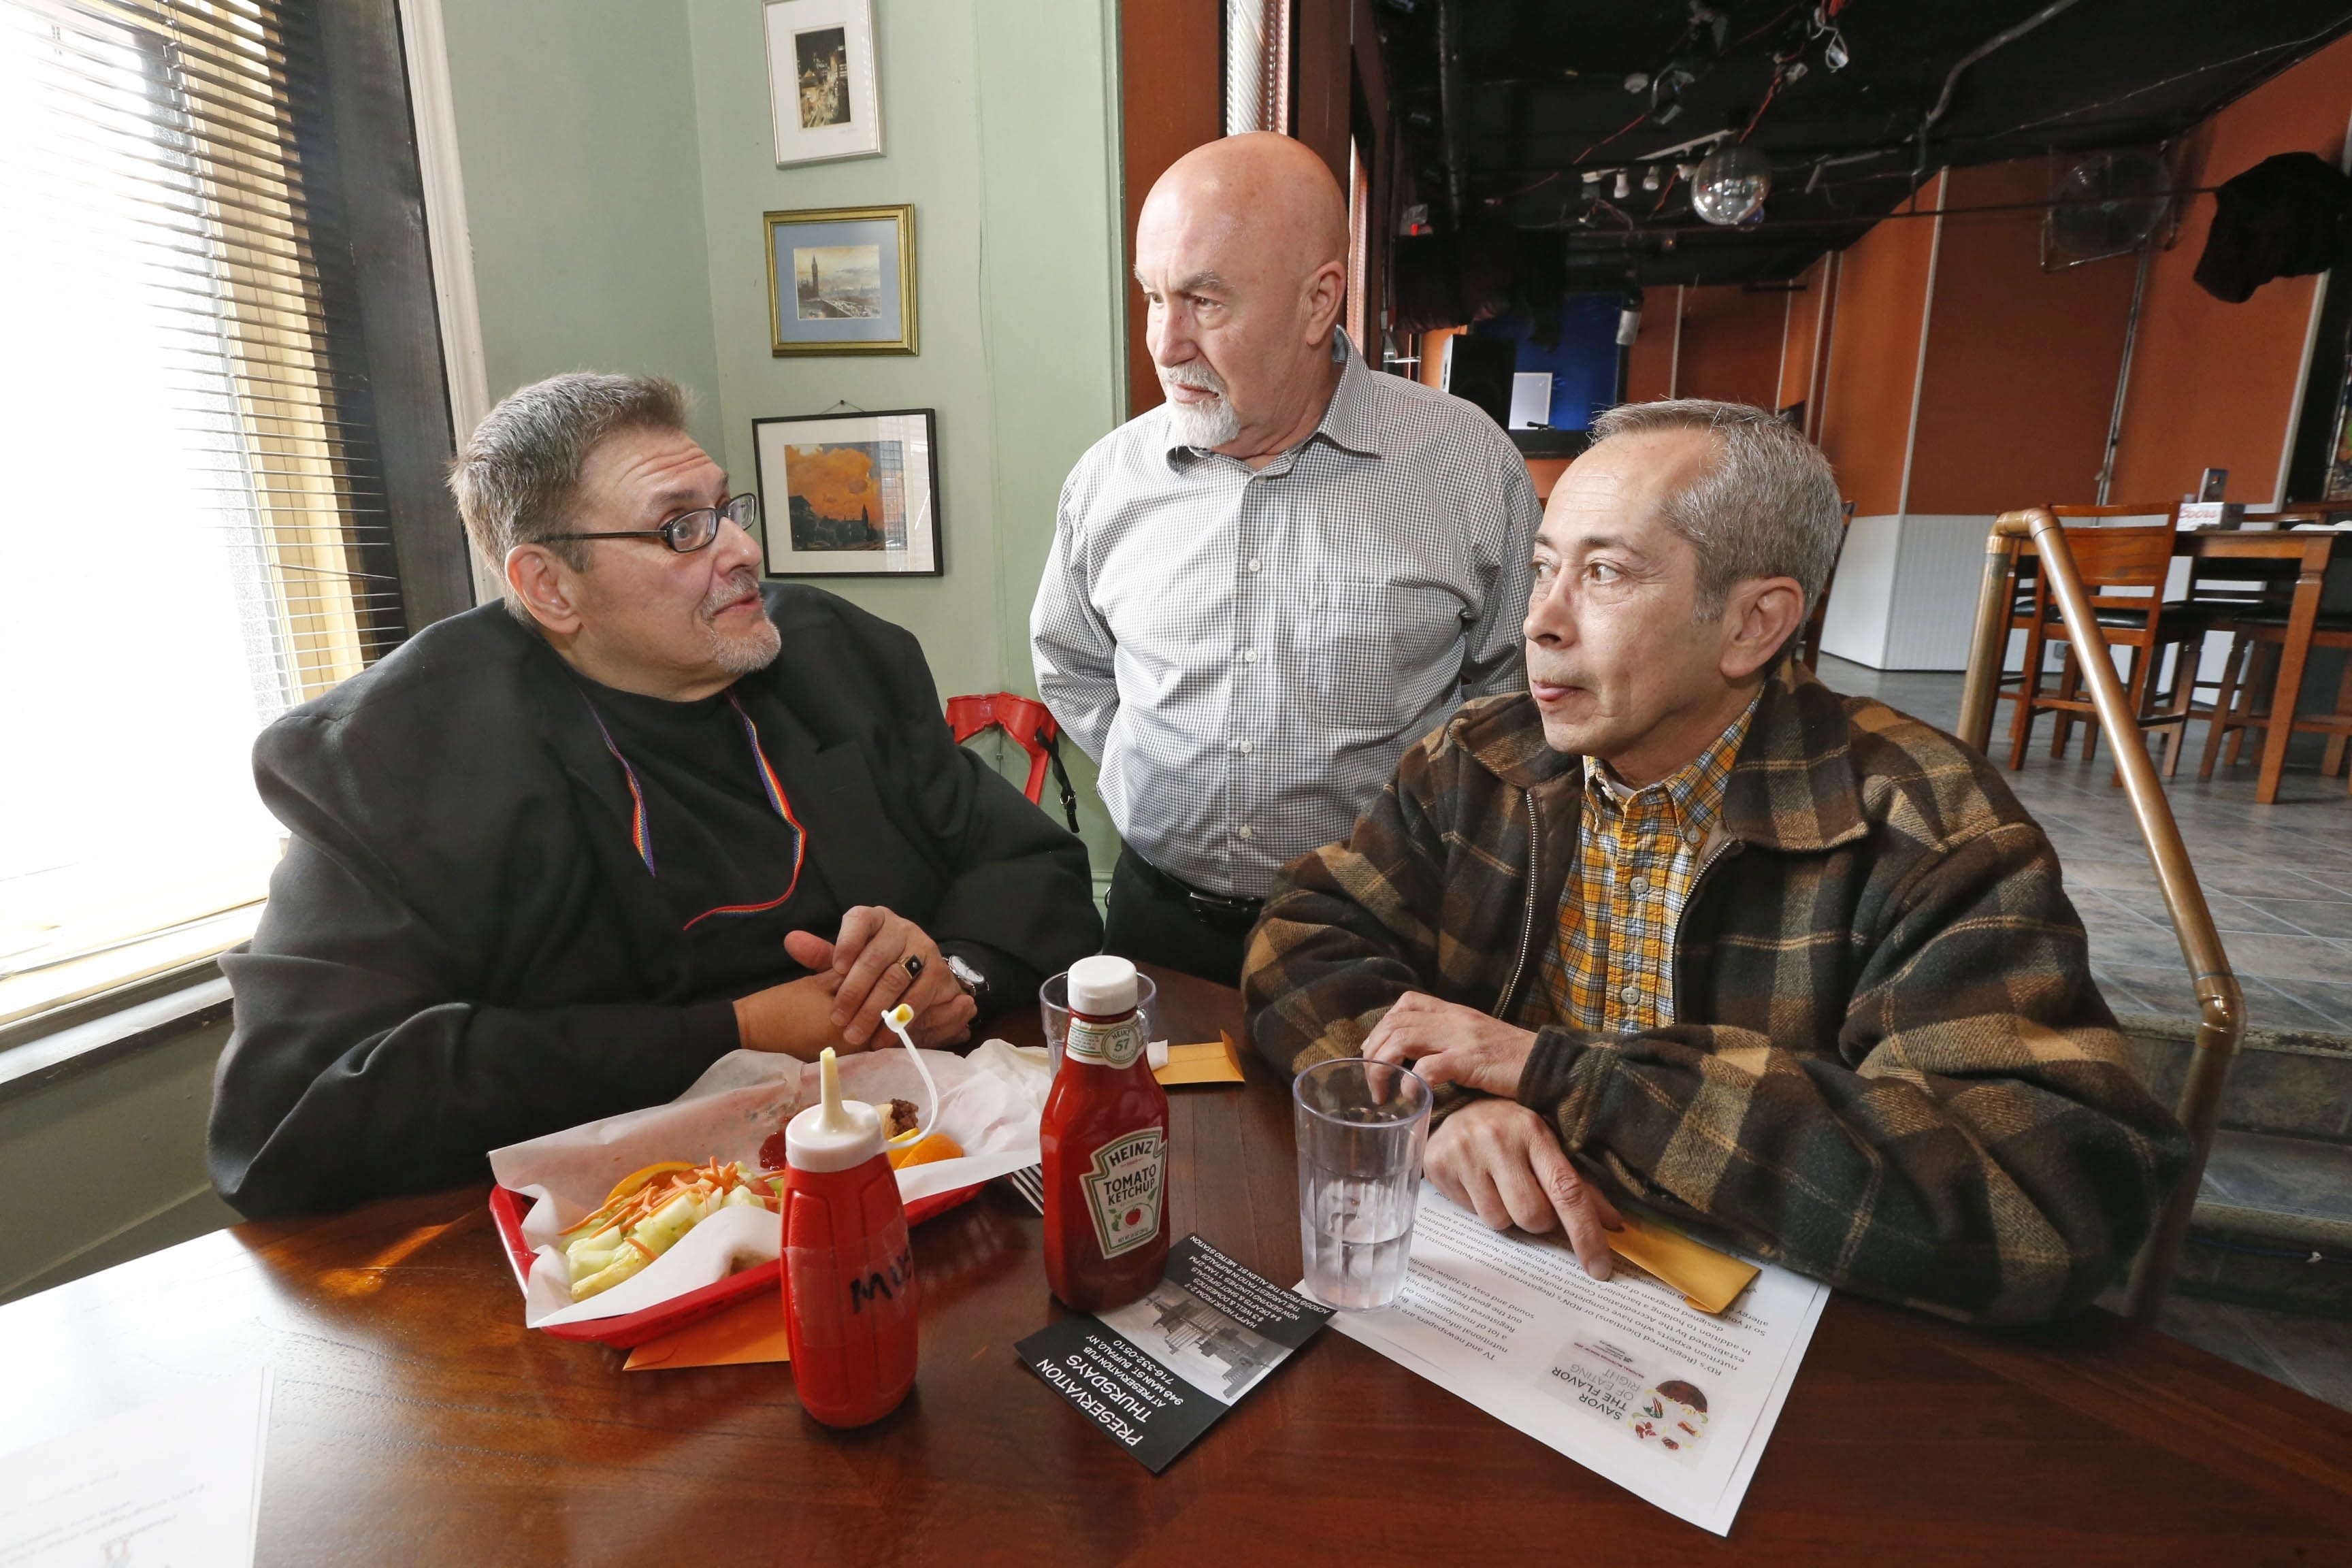 Erie County offers its first senior dining program for LGBT community